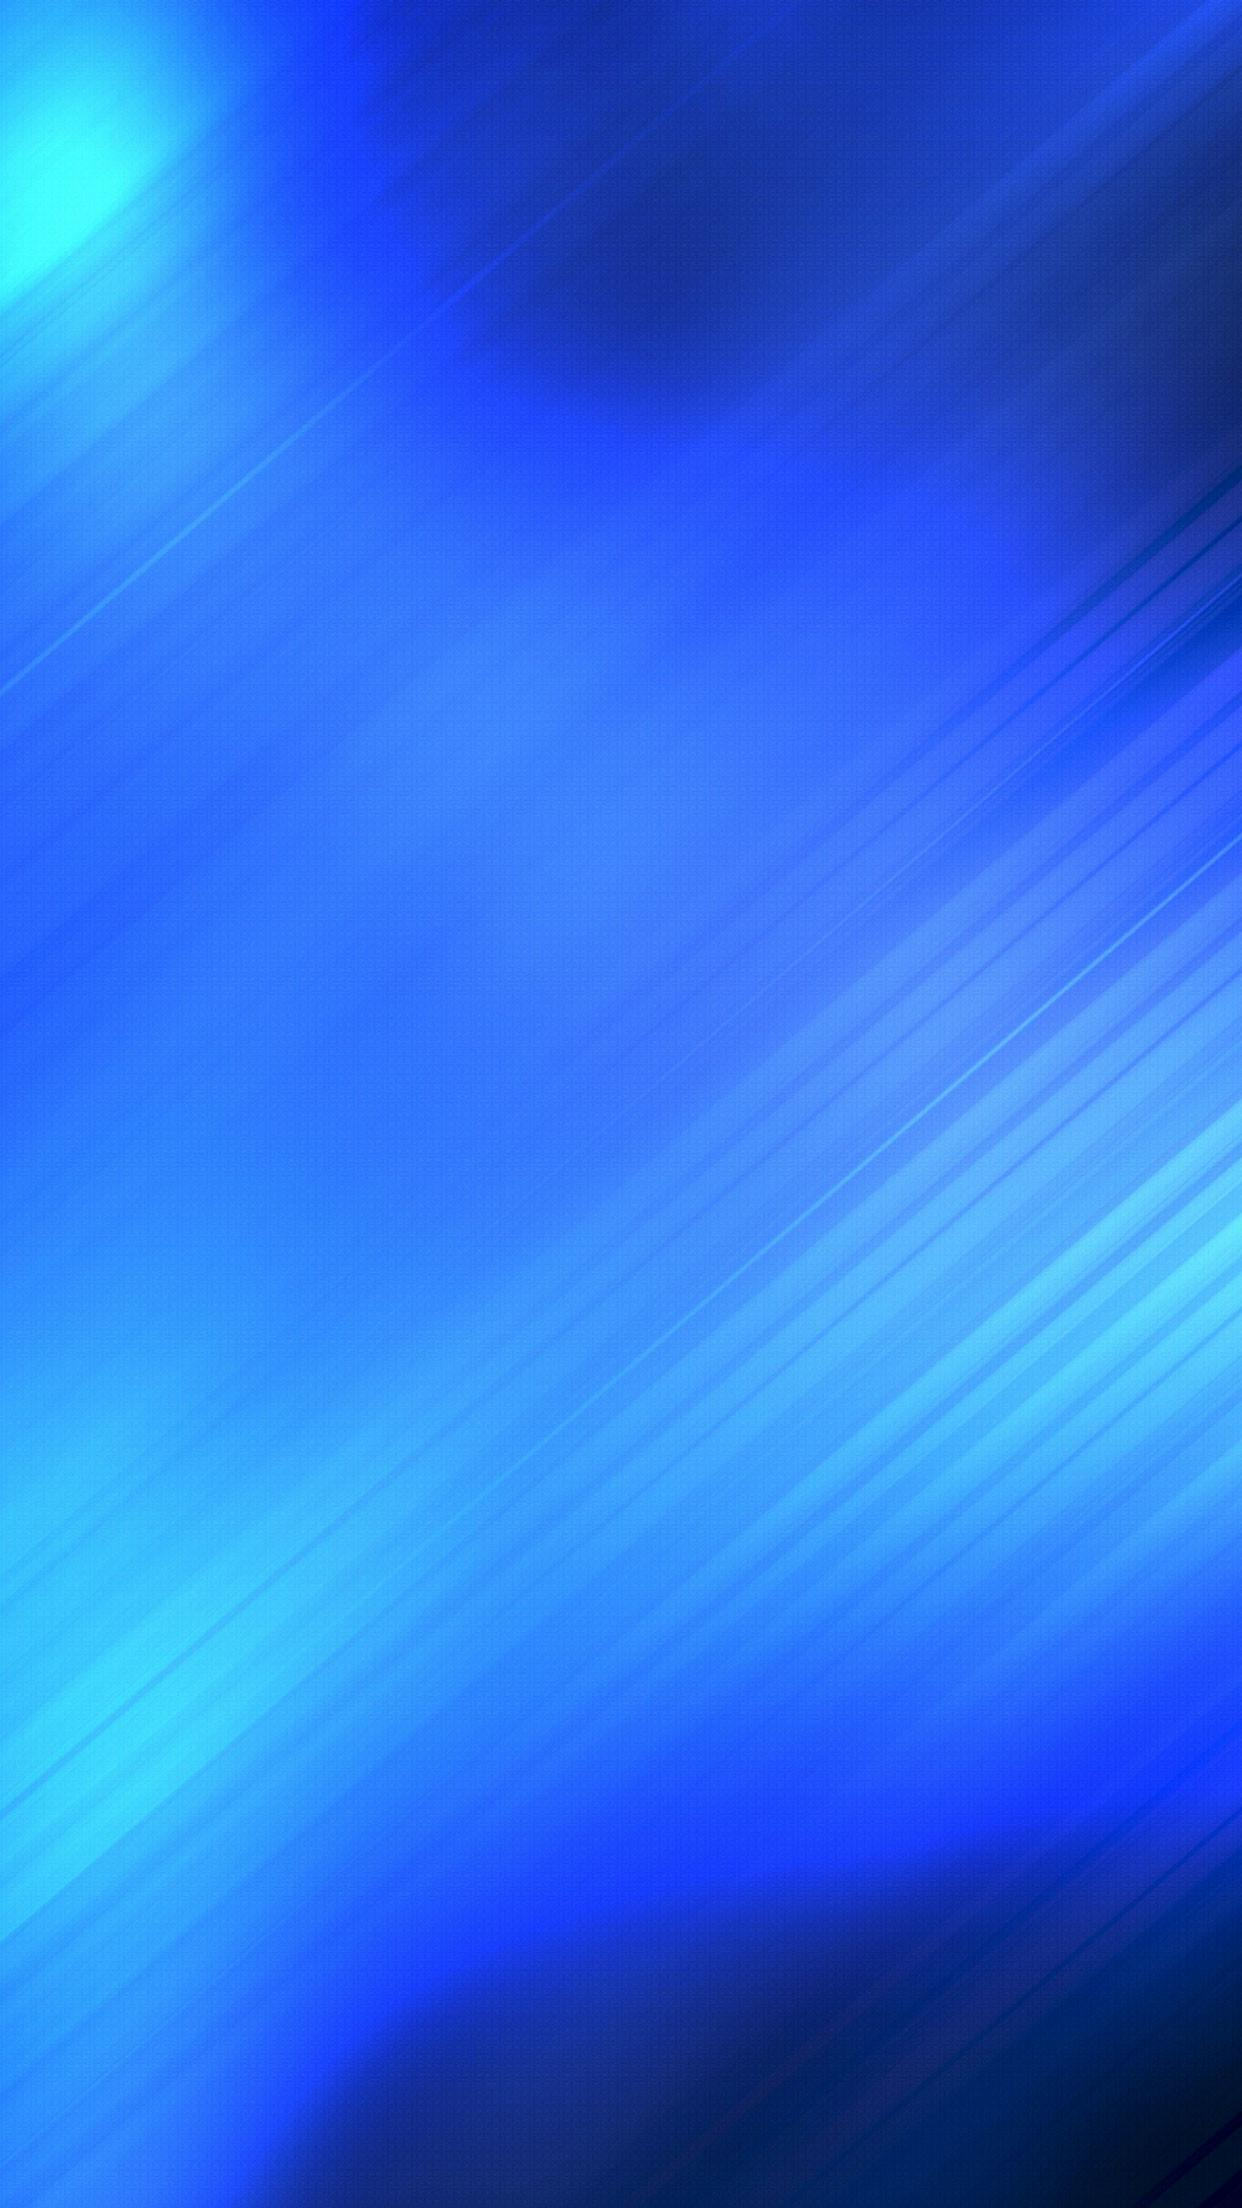 Mobile Phone Hd Blue Wallpapers - Wallpaper Cave